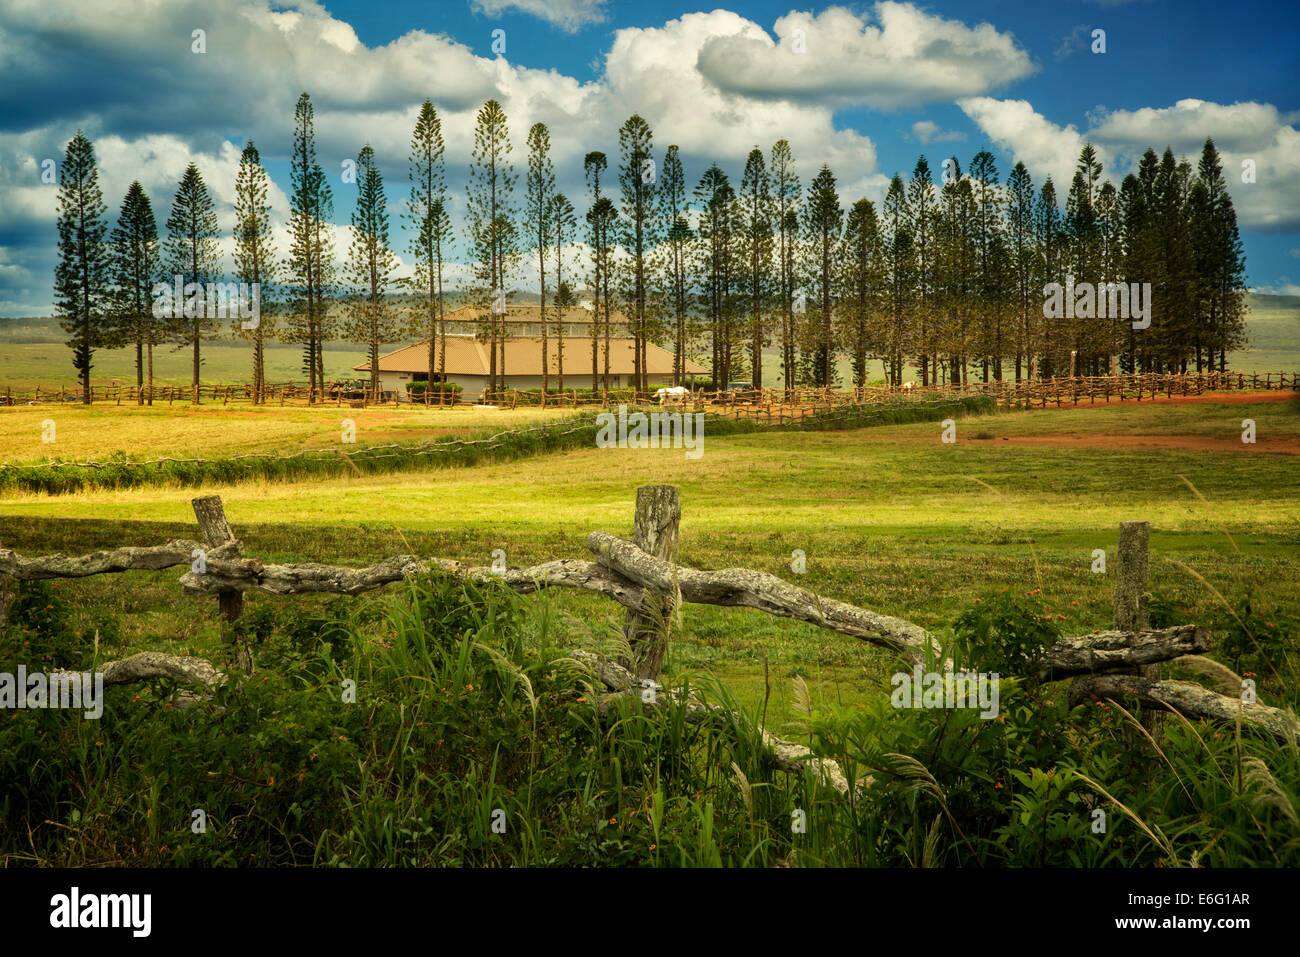 Fence, pasture and Cook Pines with barn, Stables at Ko'ele. Lanai, Hawaii - Stock Image